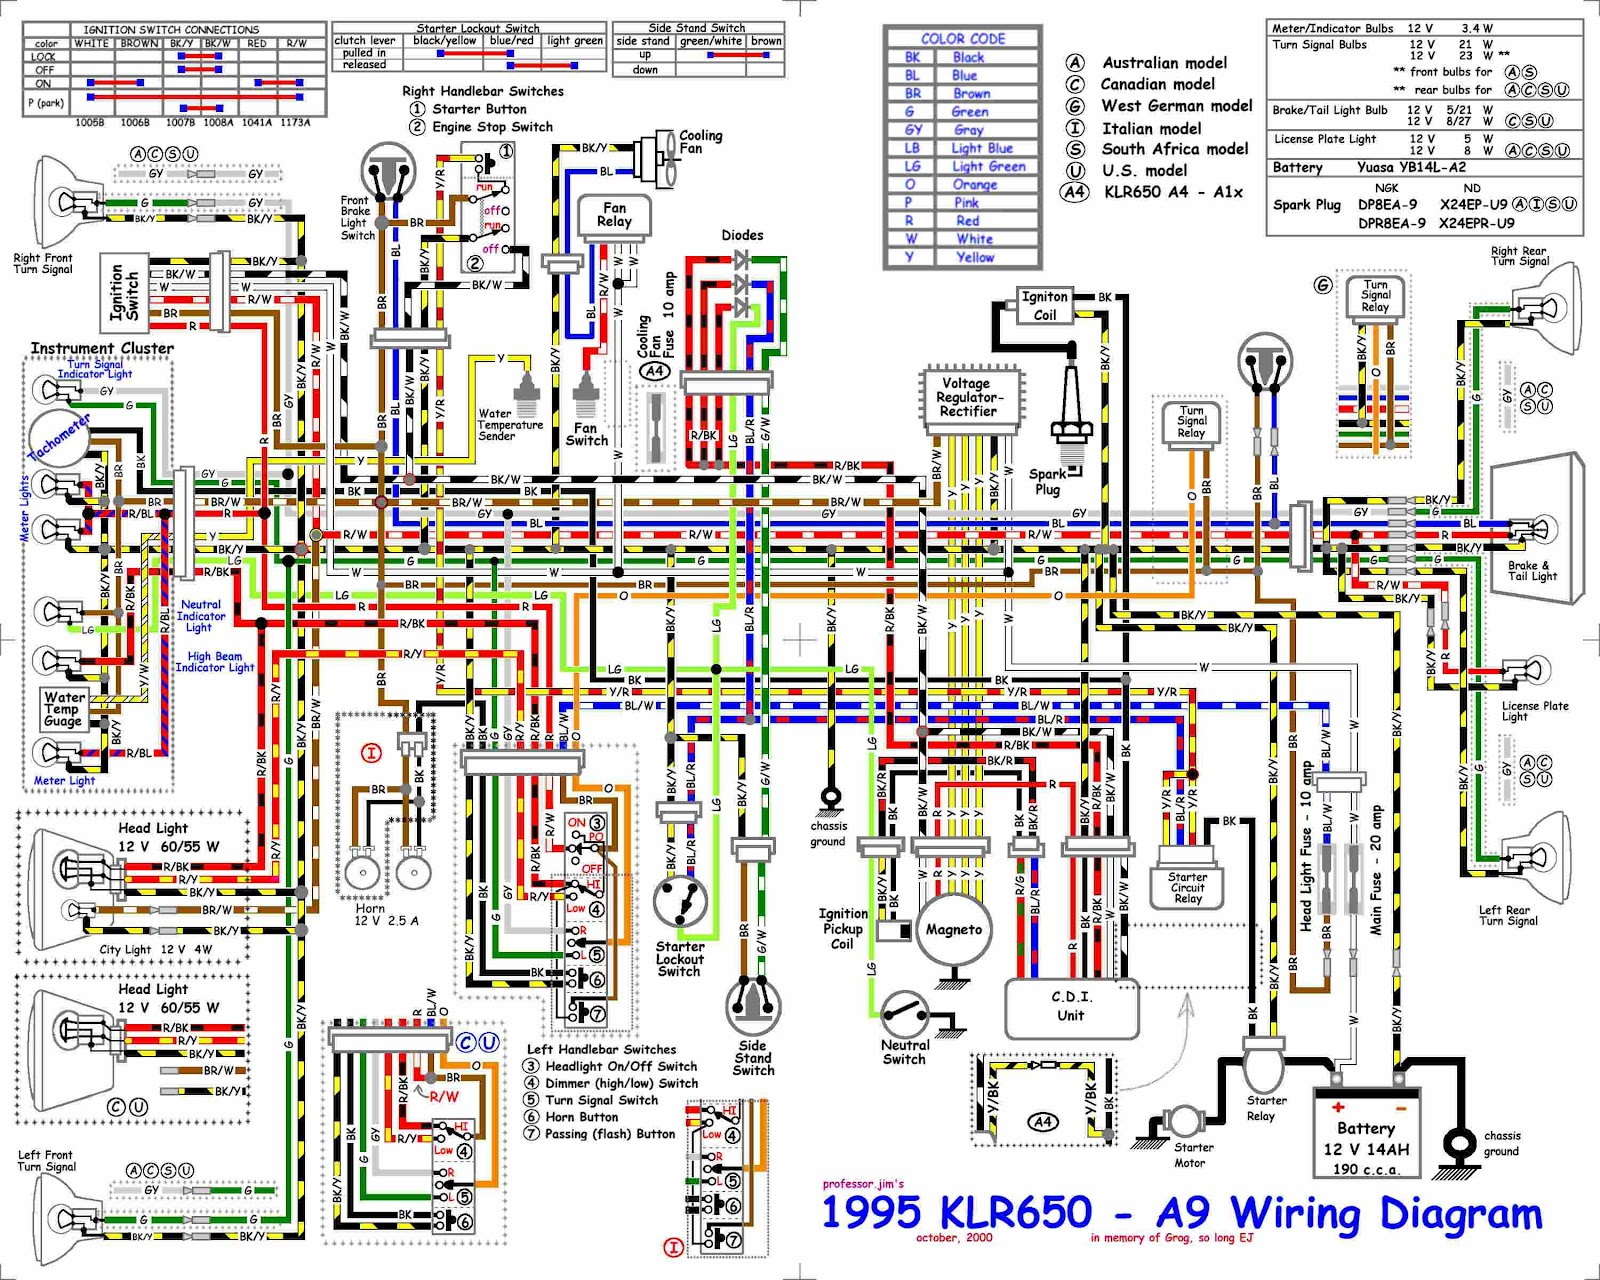 Kawasaki KLR650 A9 1995 Motorcycle Electrical Wiring Diagram | All ...